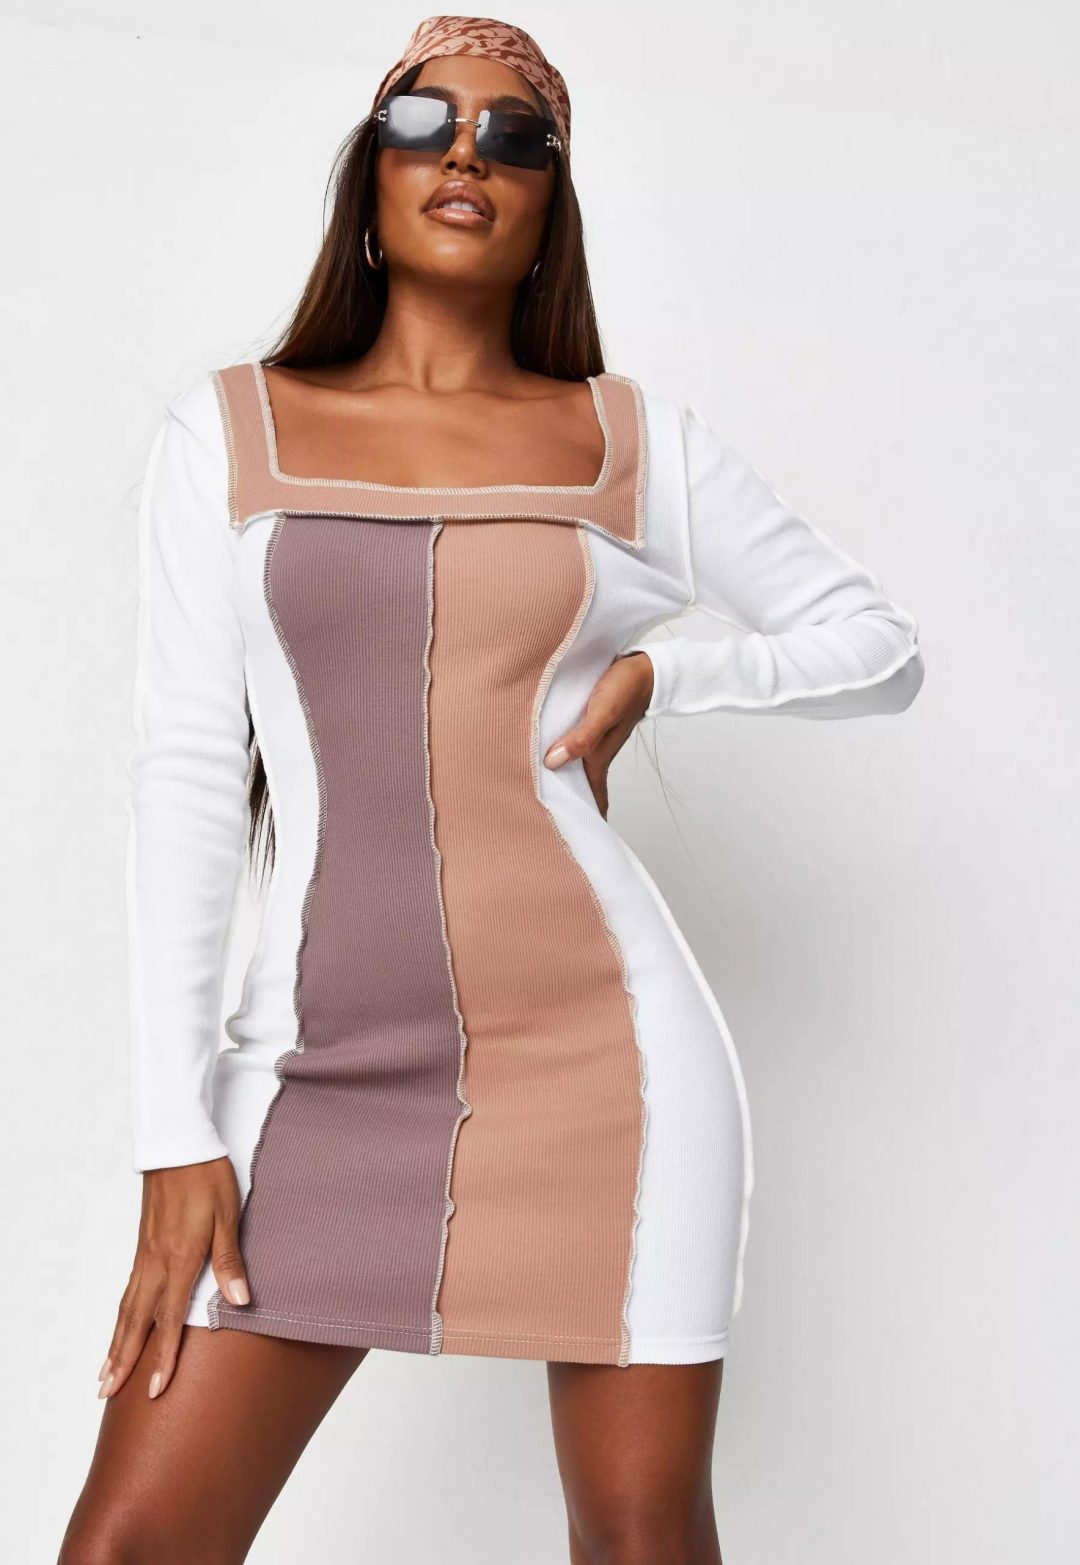 Two-tone dress for aesthetic outfits